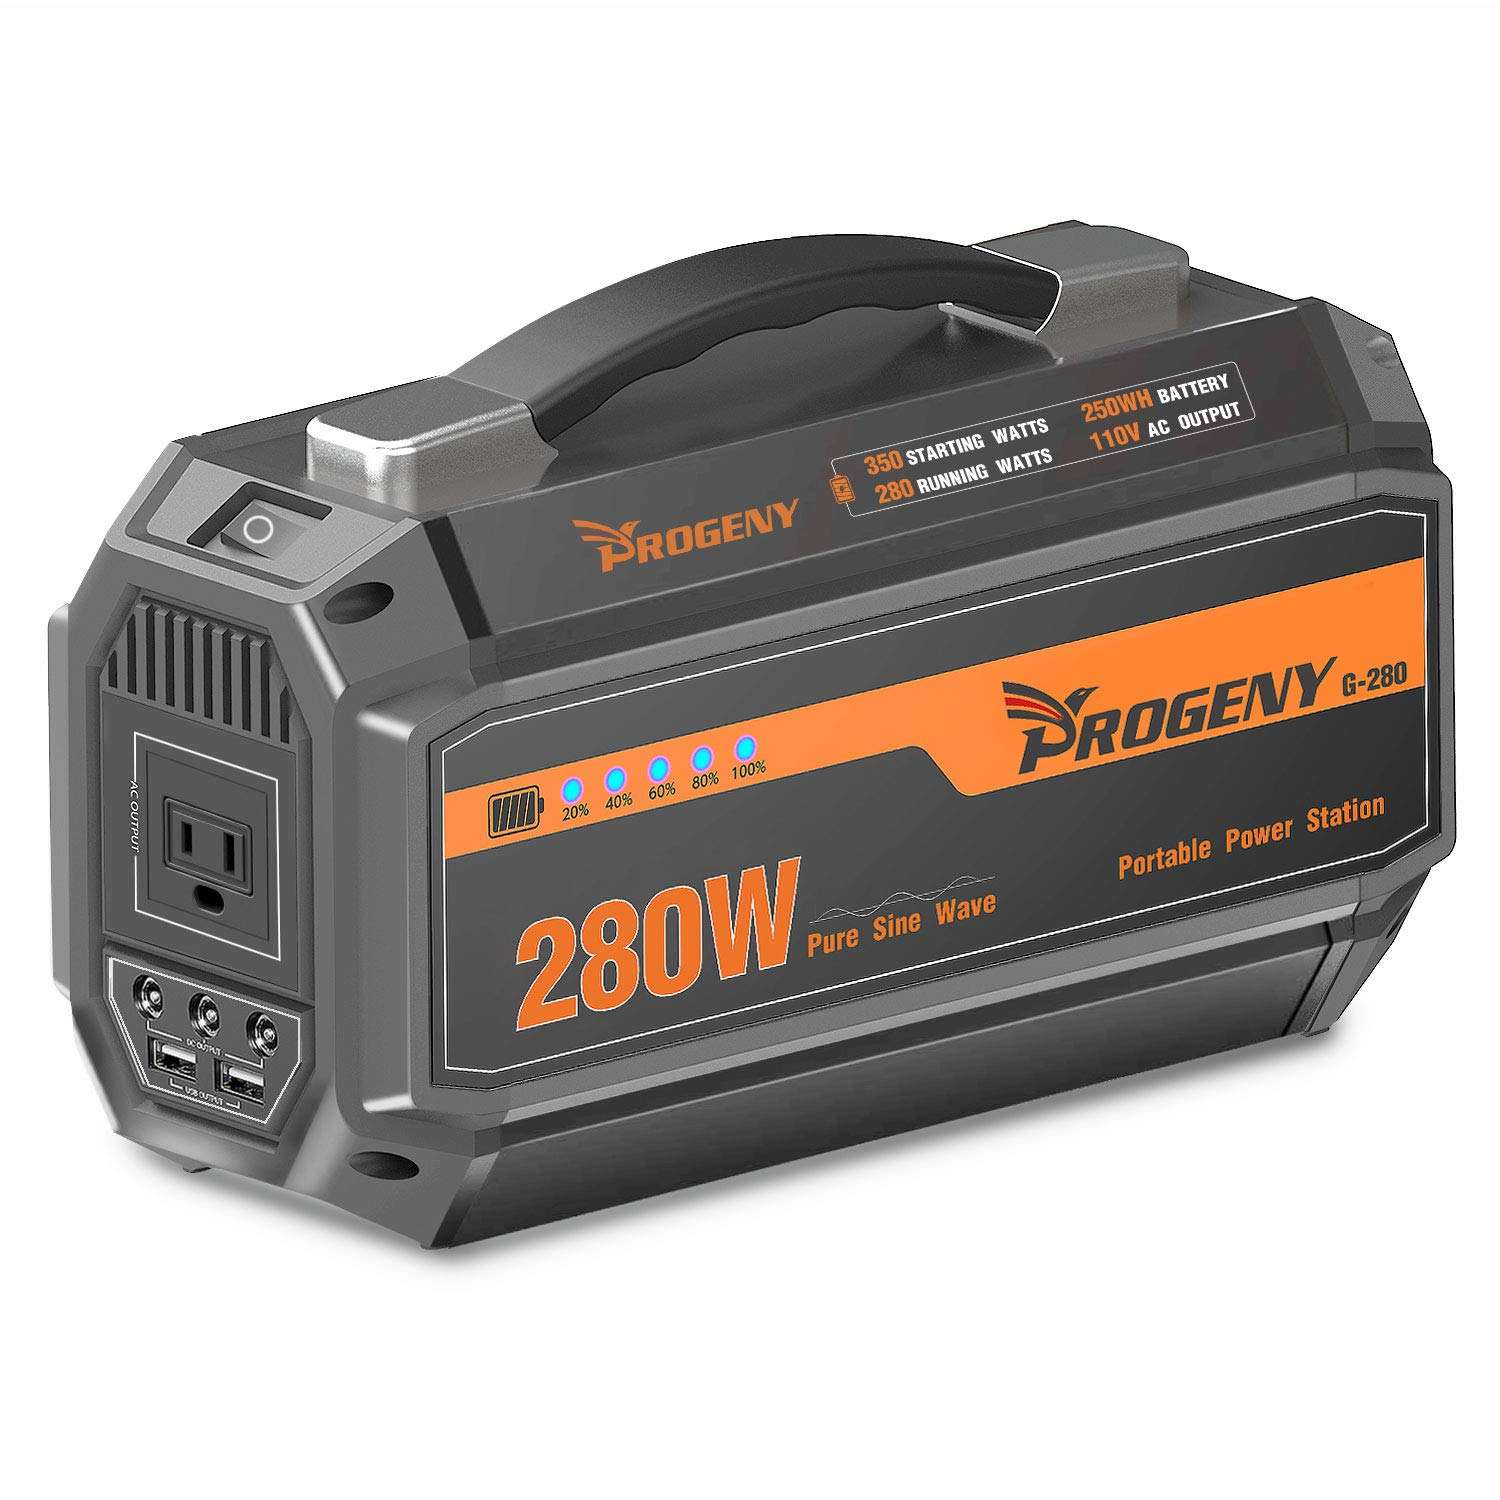 PROGENY 280W Generator Portable Power Station- [ Upgraded 250Wh / 67500mAh ]-Lithium Battery Pack Supply with 110V AC Outlet, 3 DC 12V Ports, 2 USB , Solar Generators for Camping CPAP Emergency Home